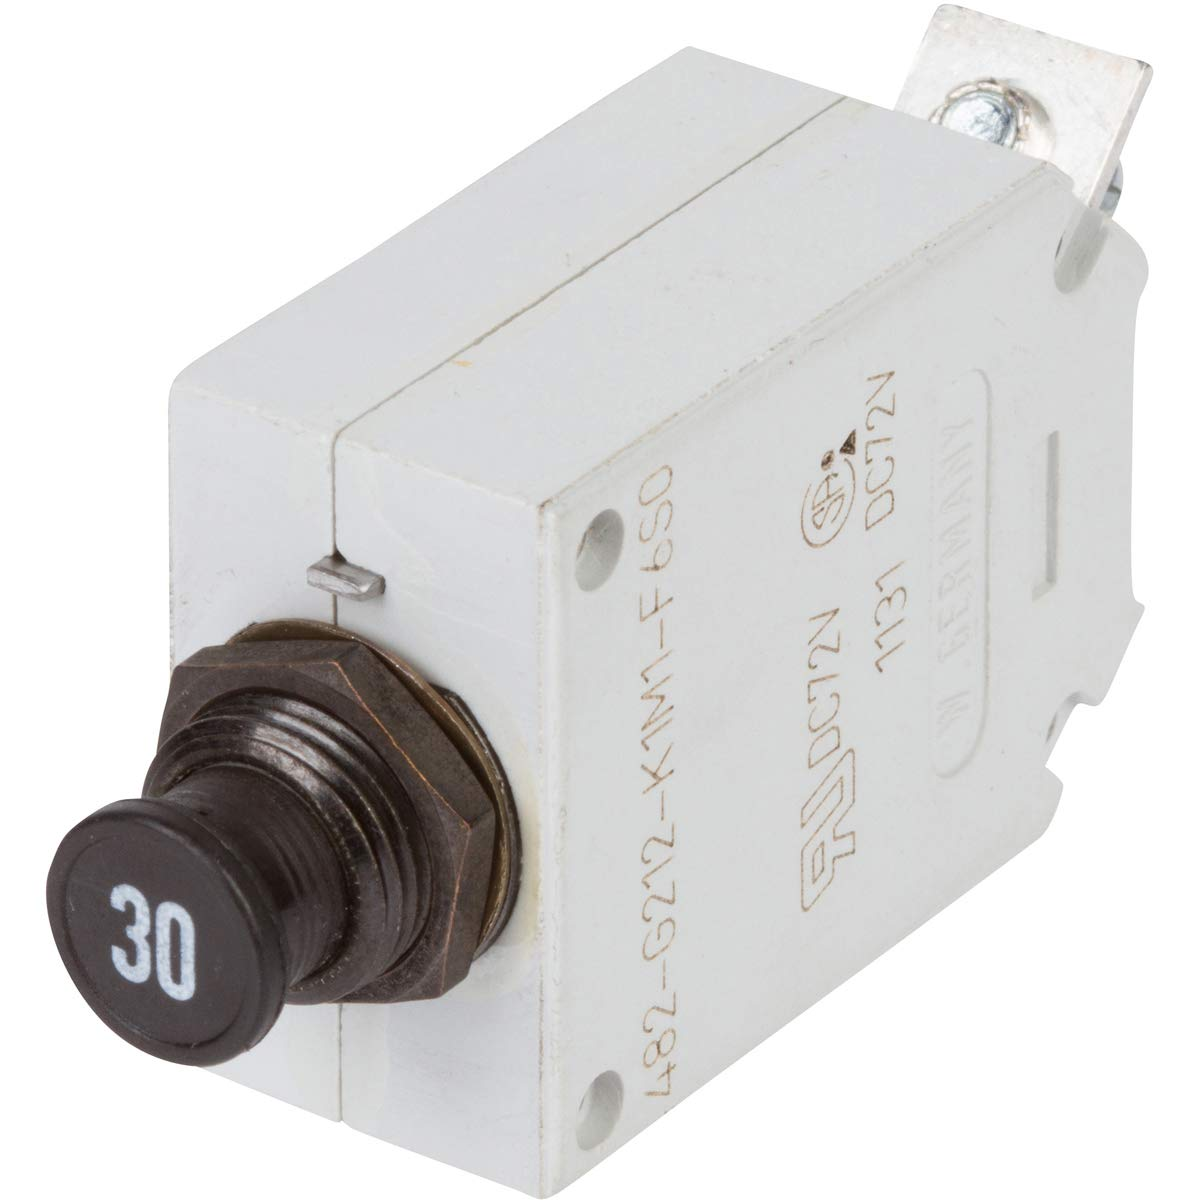 E-T-A Circuit Protection and Control 482-G212-K1M1-A1S0-30A , Circuit Breaker; Therm; Push/Pull; Cur-Rtg30A; Panel; 1 Pole; Vol-Rtg 115/28VAC/VDC